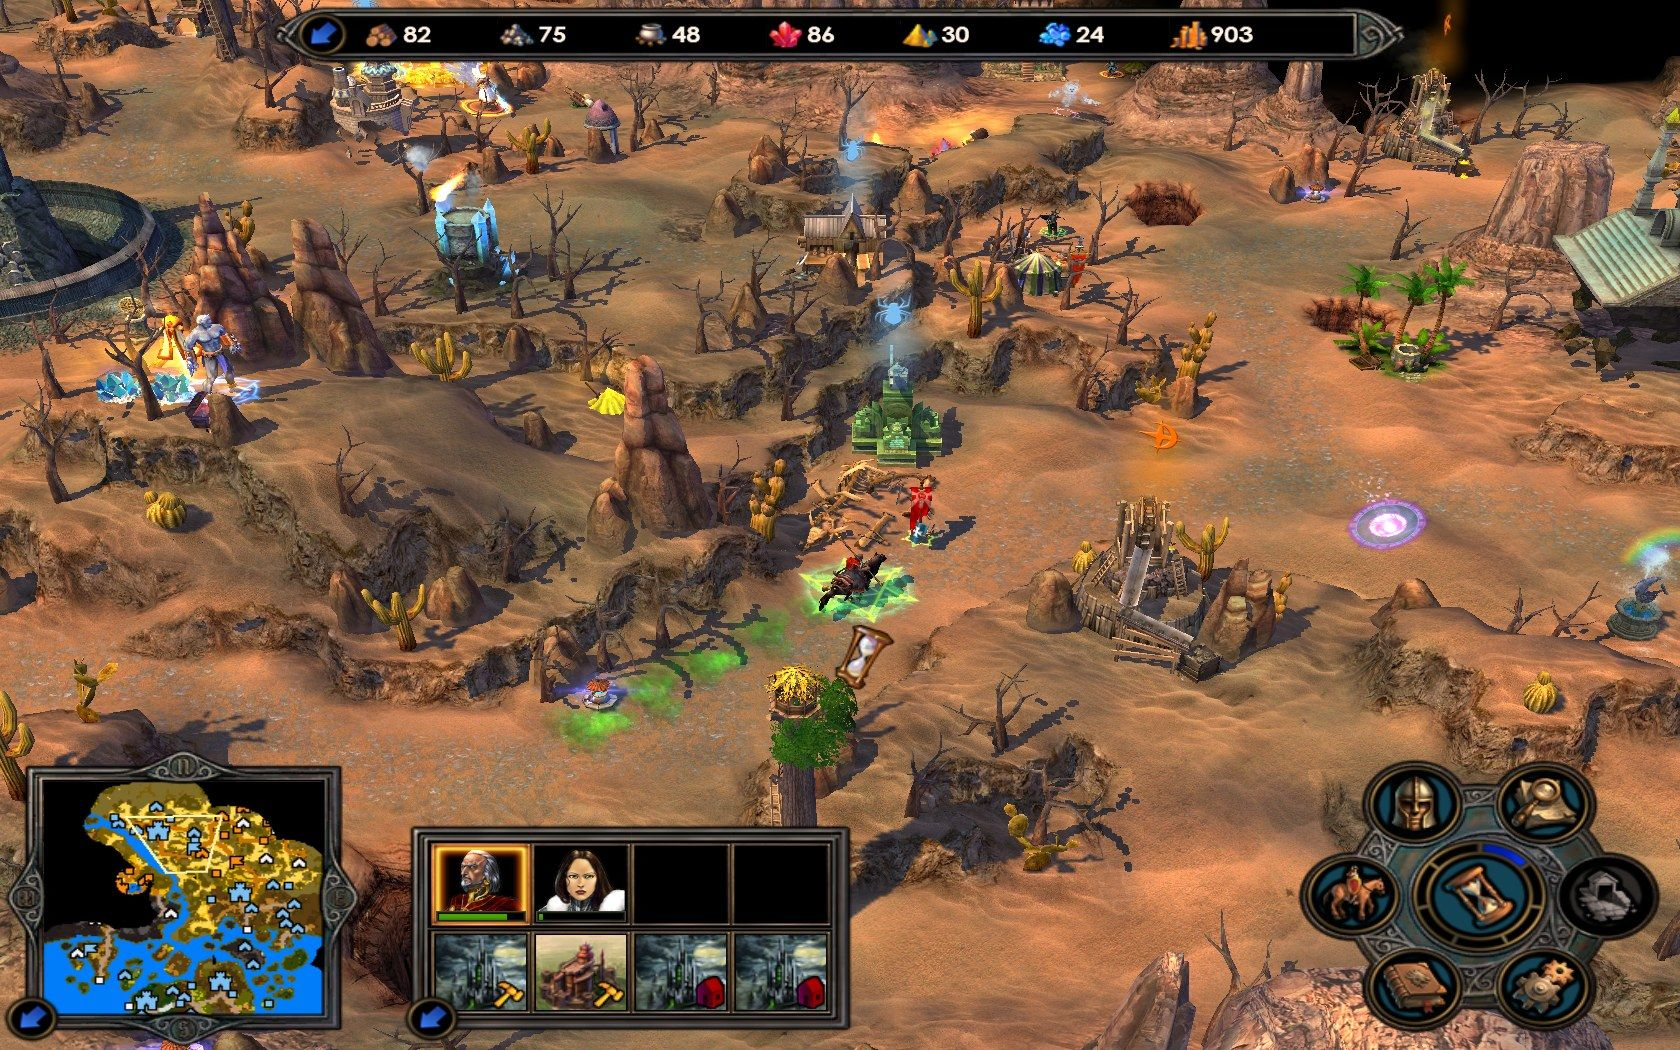 heroes of might and magic v 9 - Game cũ mà hay: Heroes of Might and Magic V